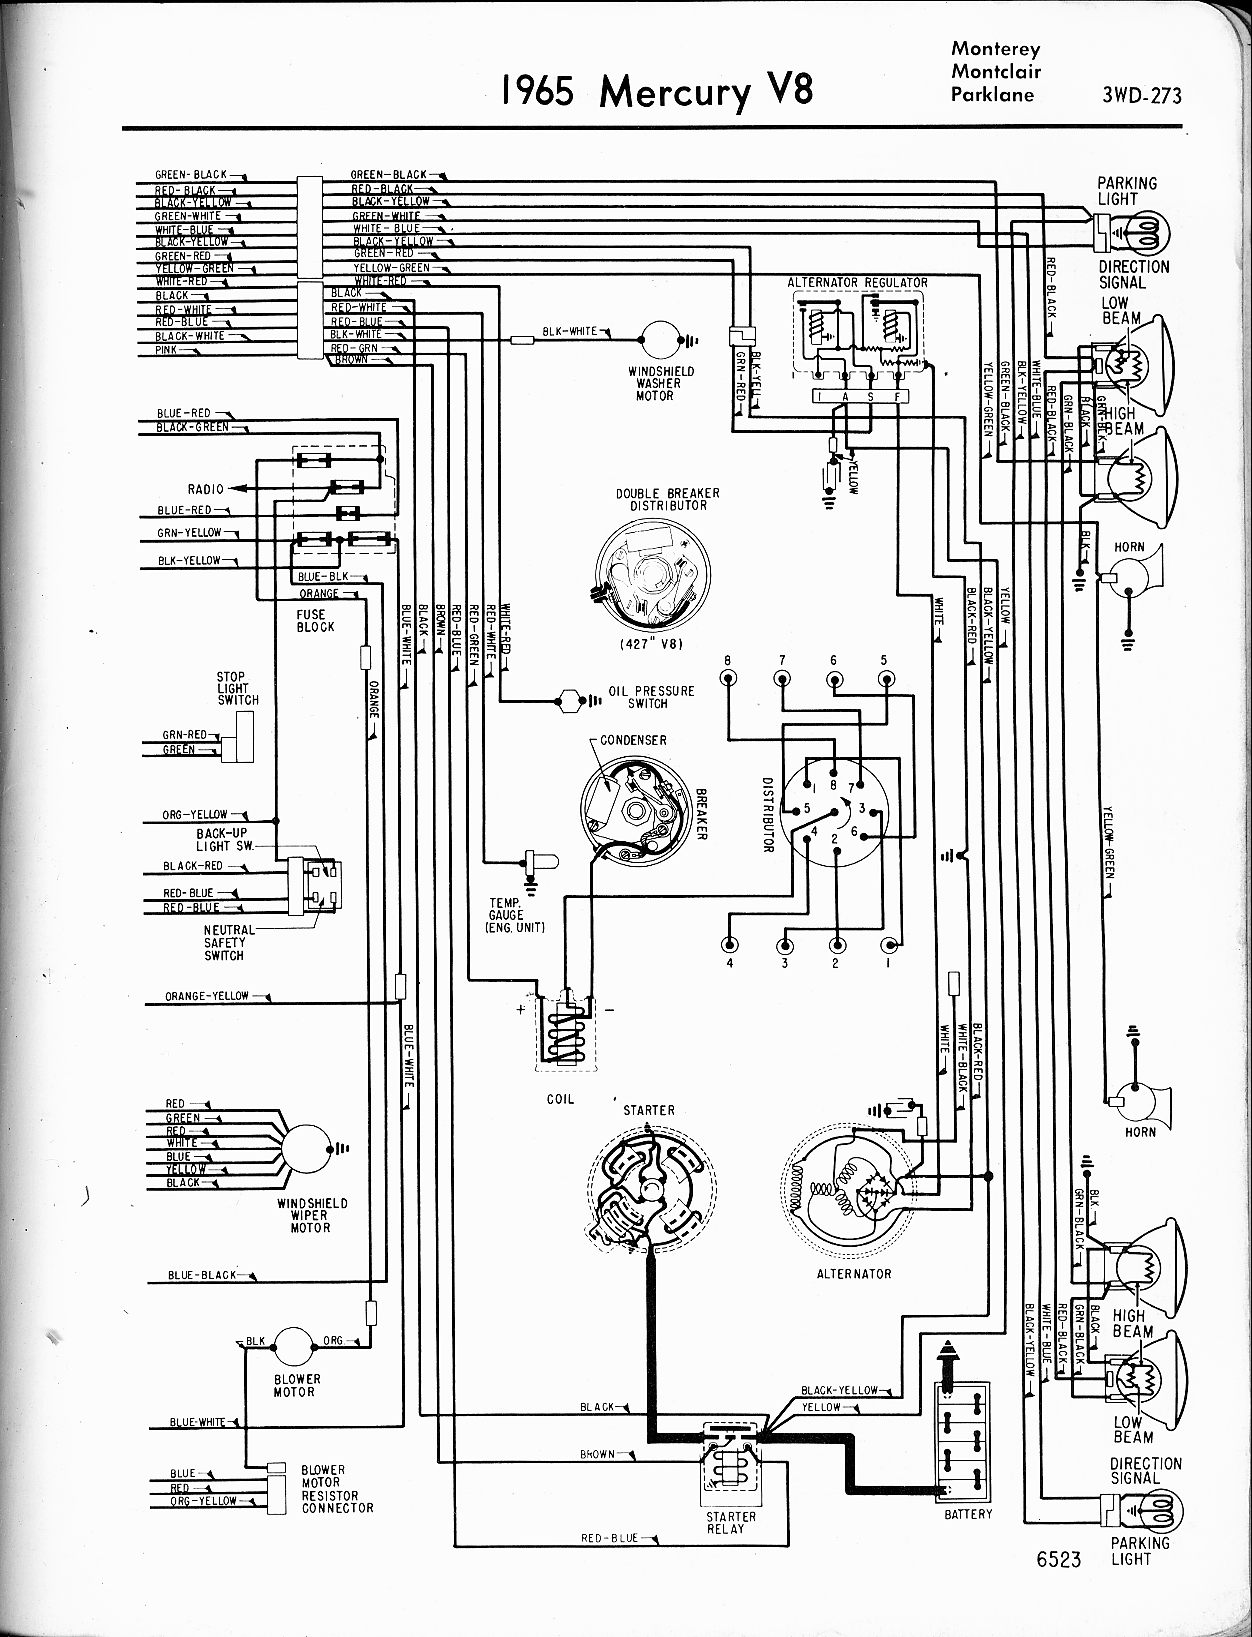 headlight schematic diagram free download 1969 1970 mercury wire rh regal  wealth co 1963 Chevy Truck Wiring Diagram Fuel Sender Wiring-Diagram